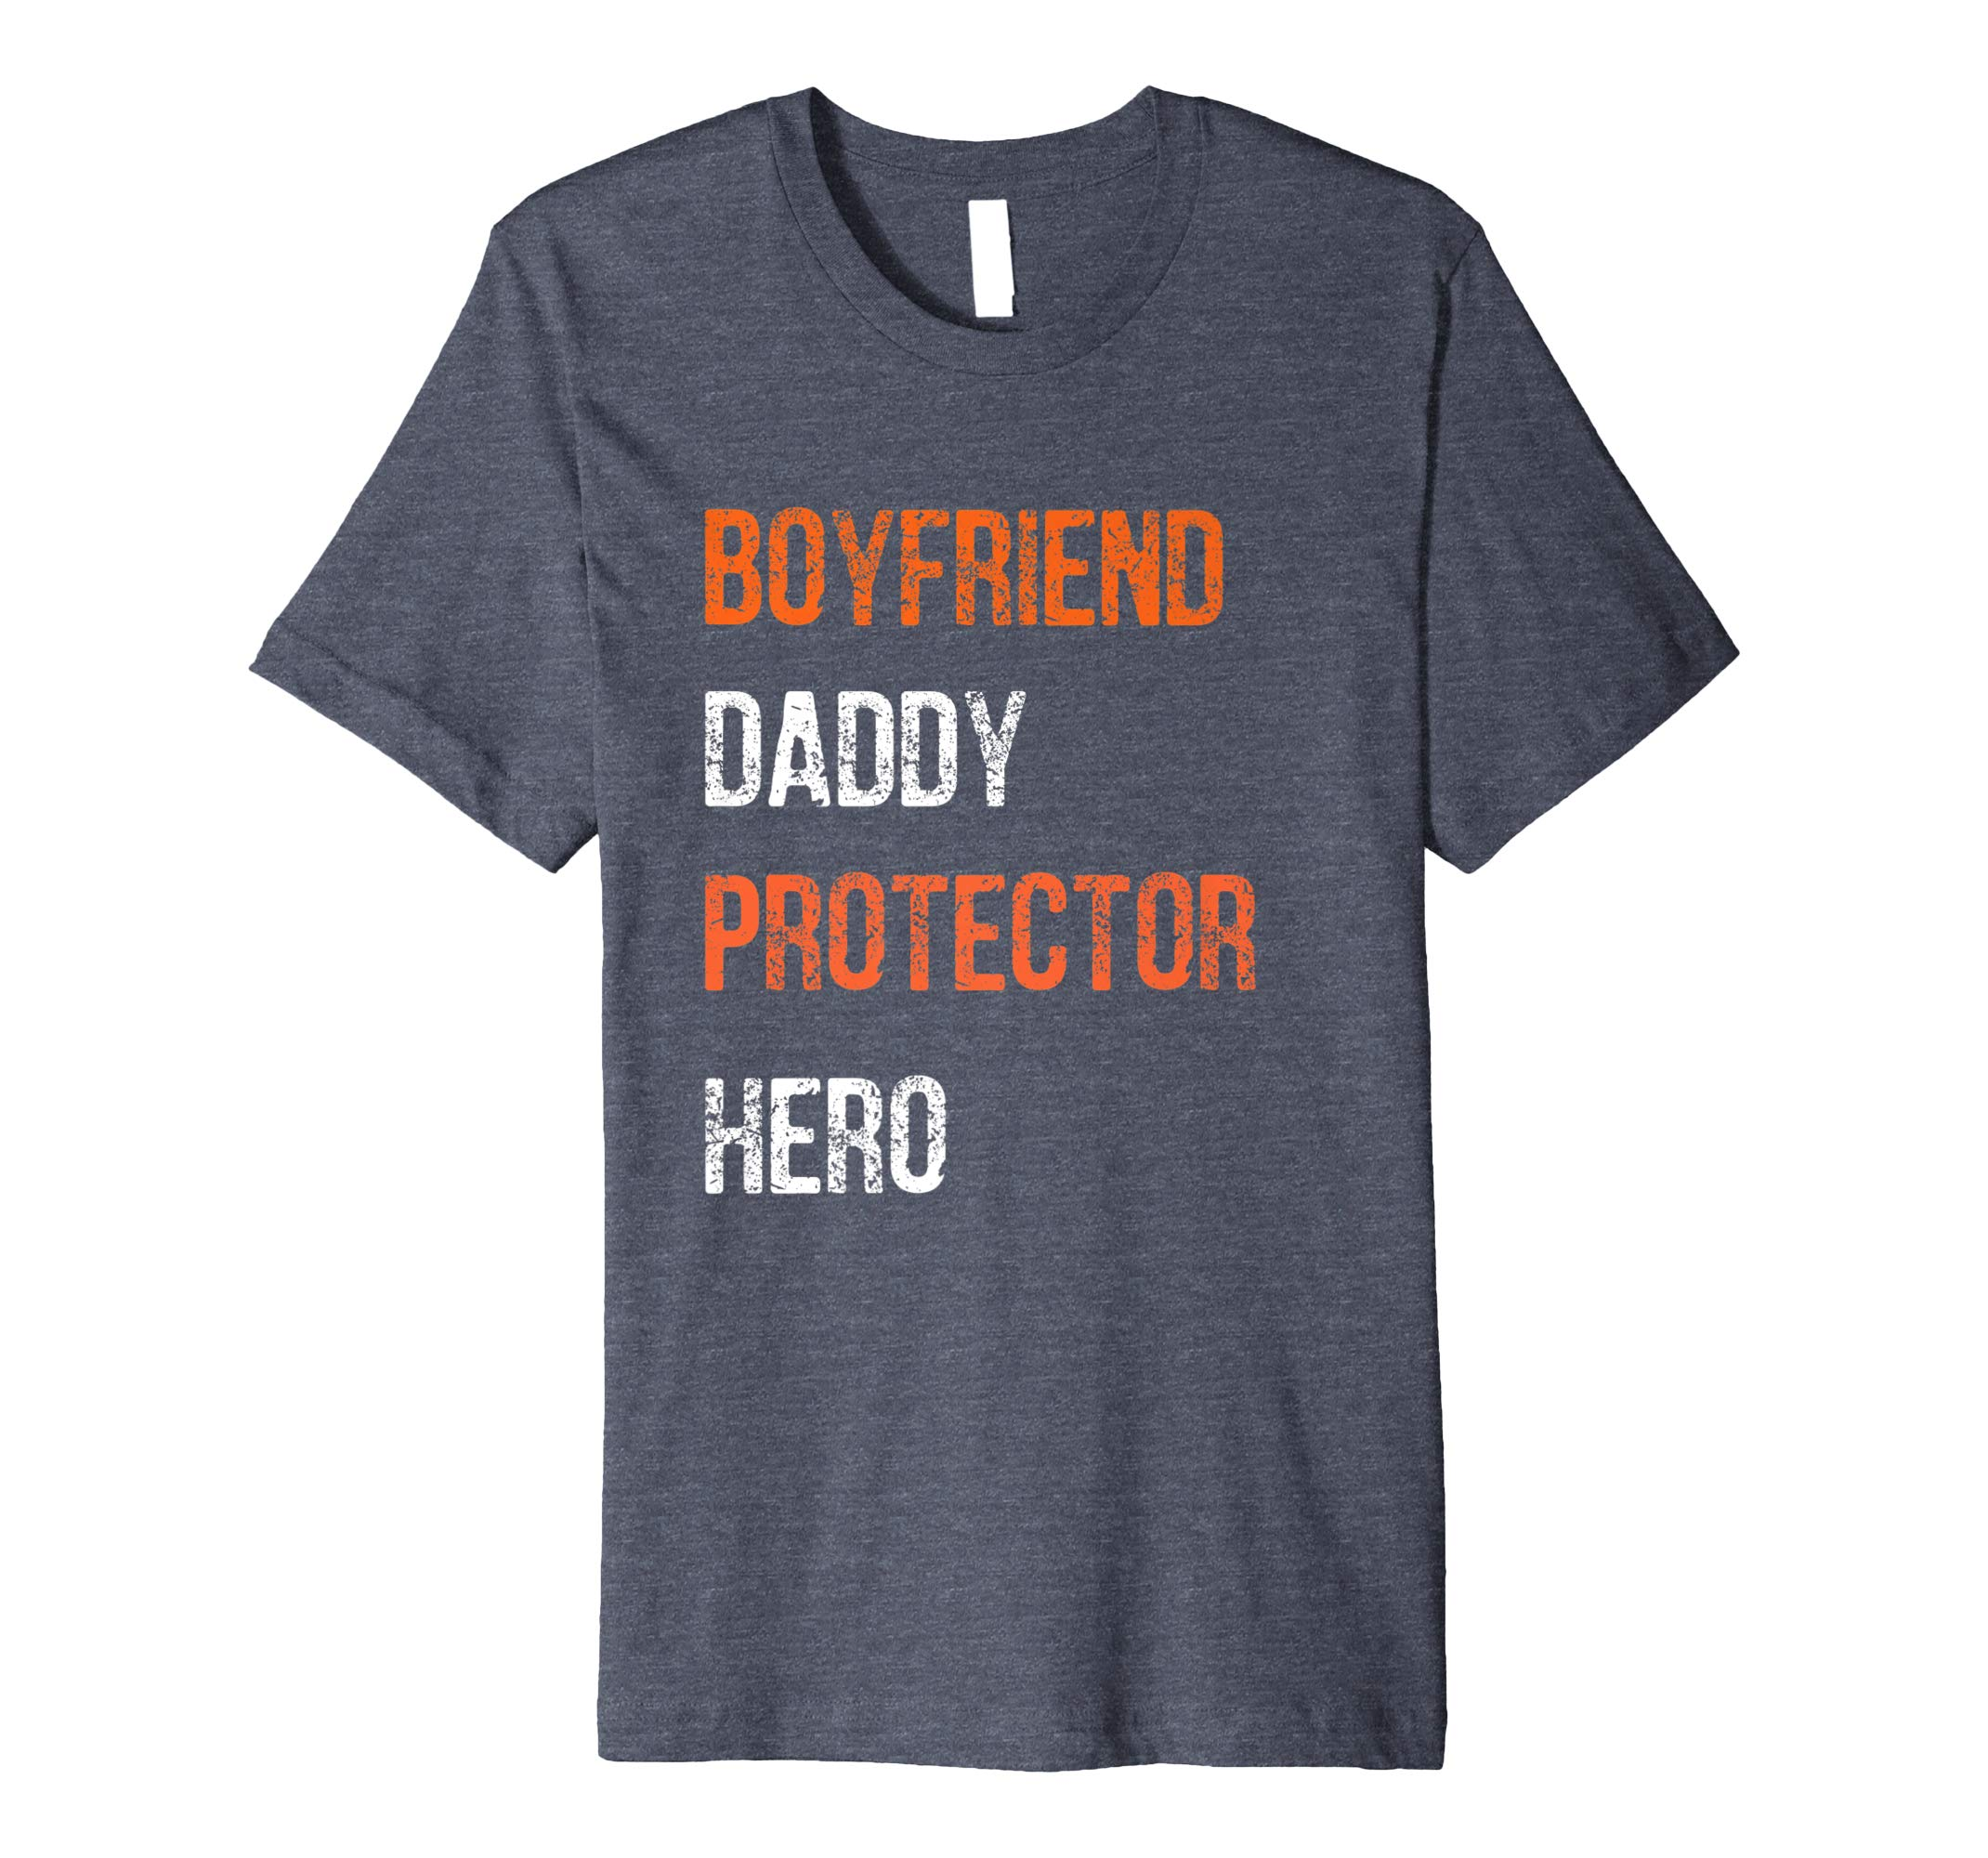 Mens Fathers Day Gift Boyfriend Daddy Hero Shirt from Girlfriend- TPT